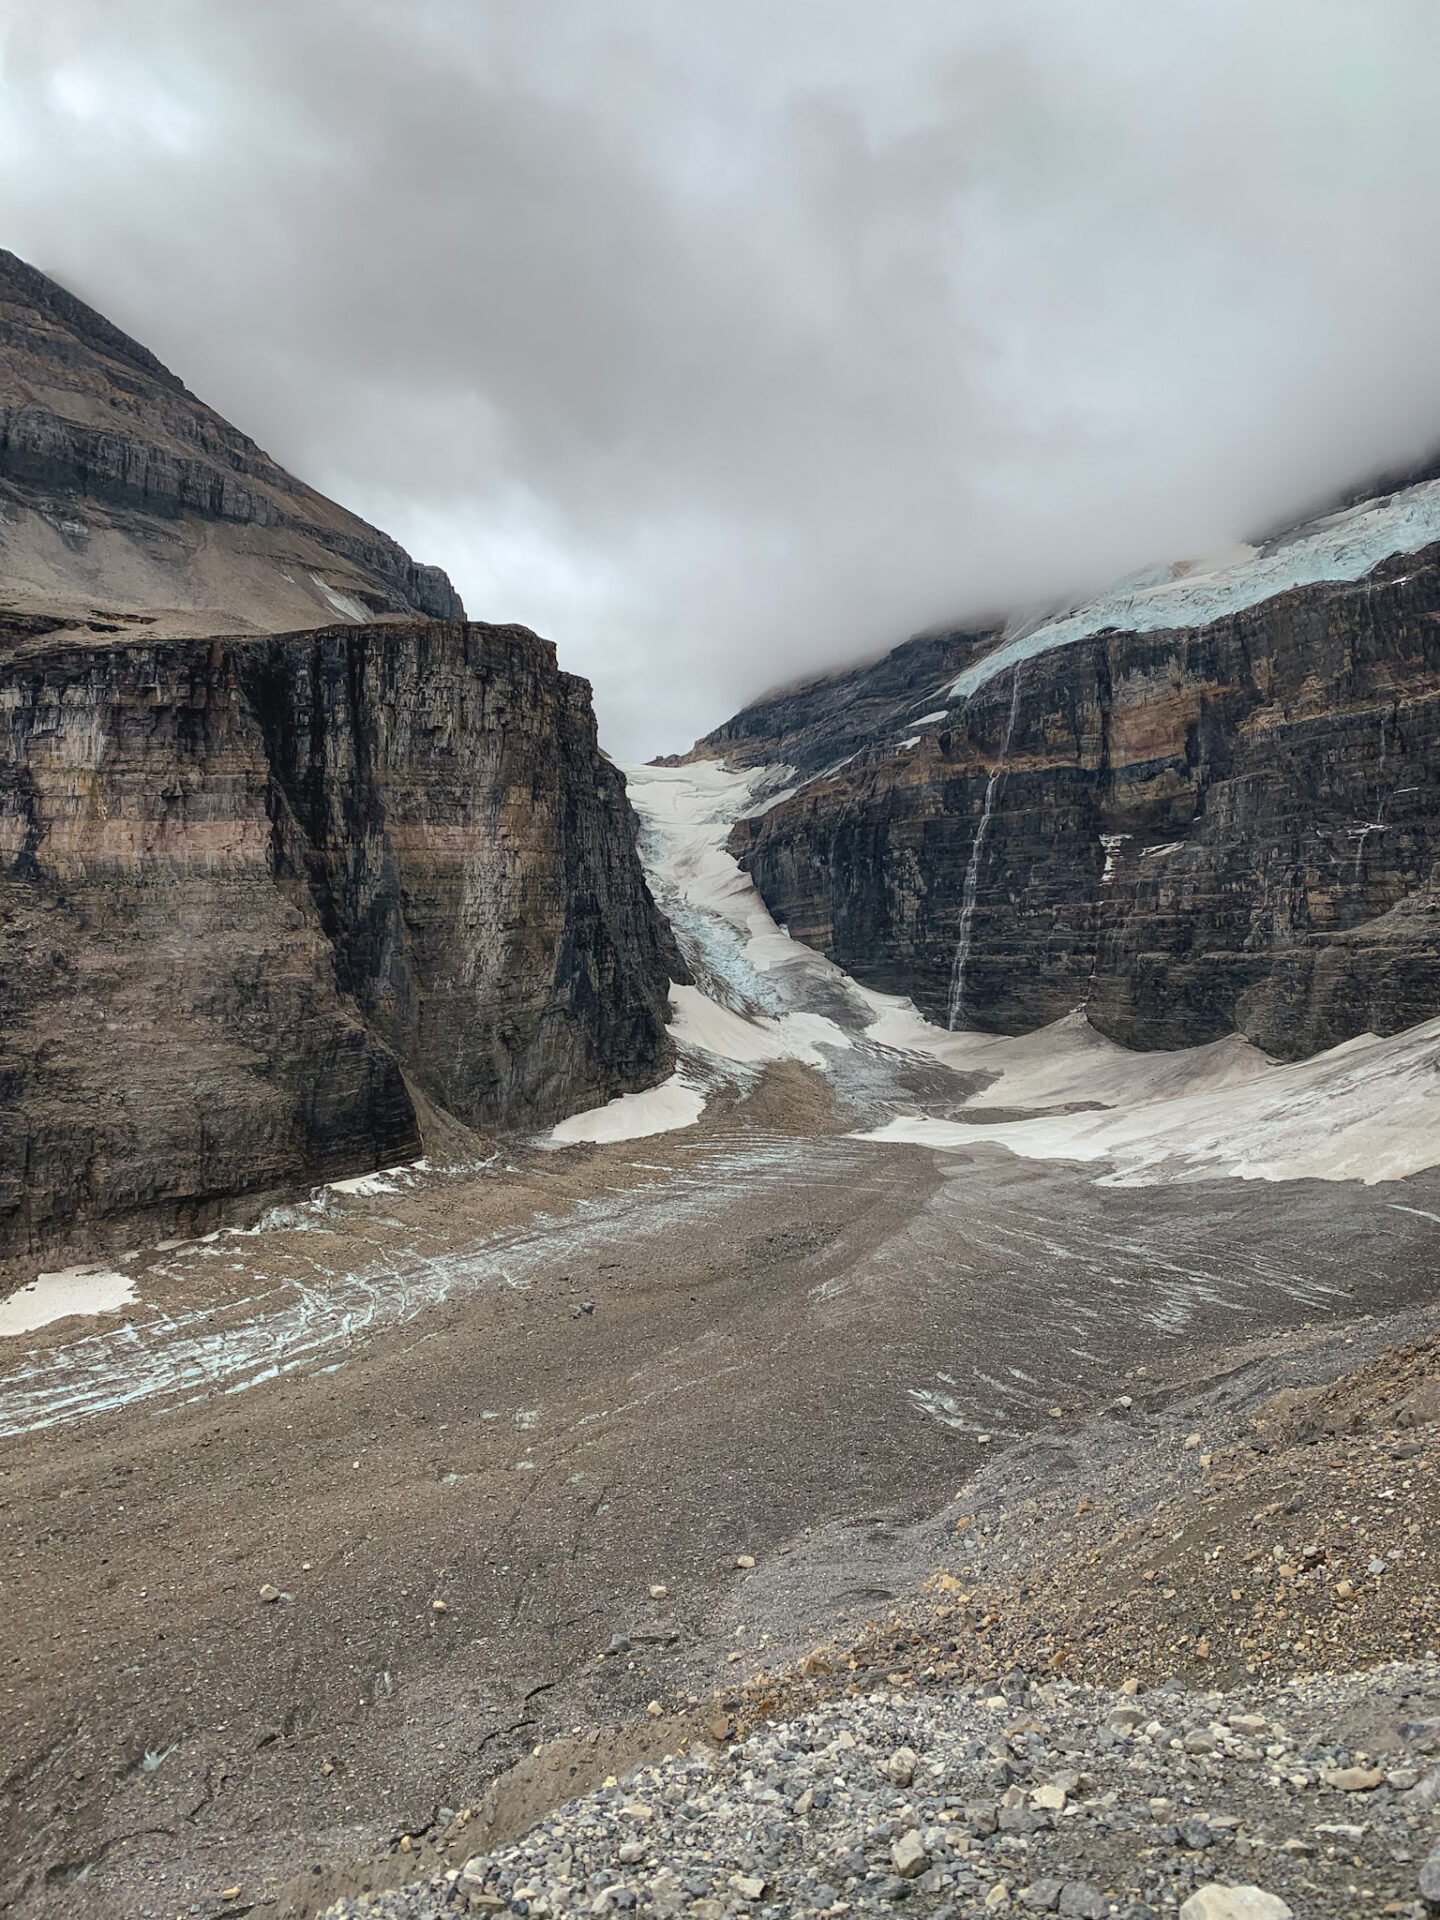 Glacier viewpoint at the Plain of the Six Glaciers hike in Lake Louise, Alberta